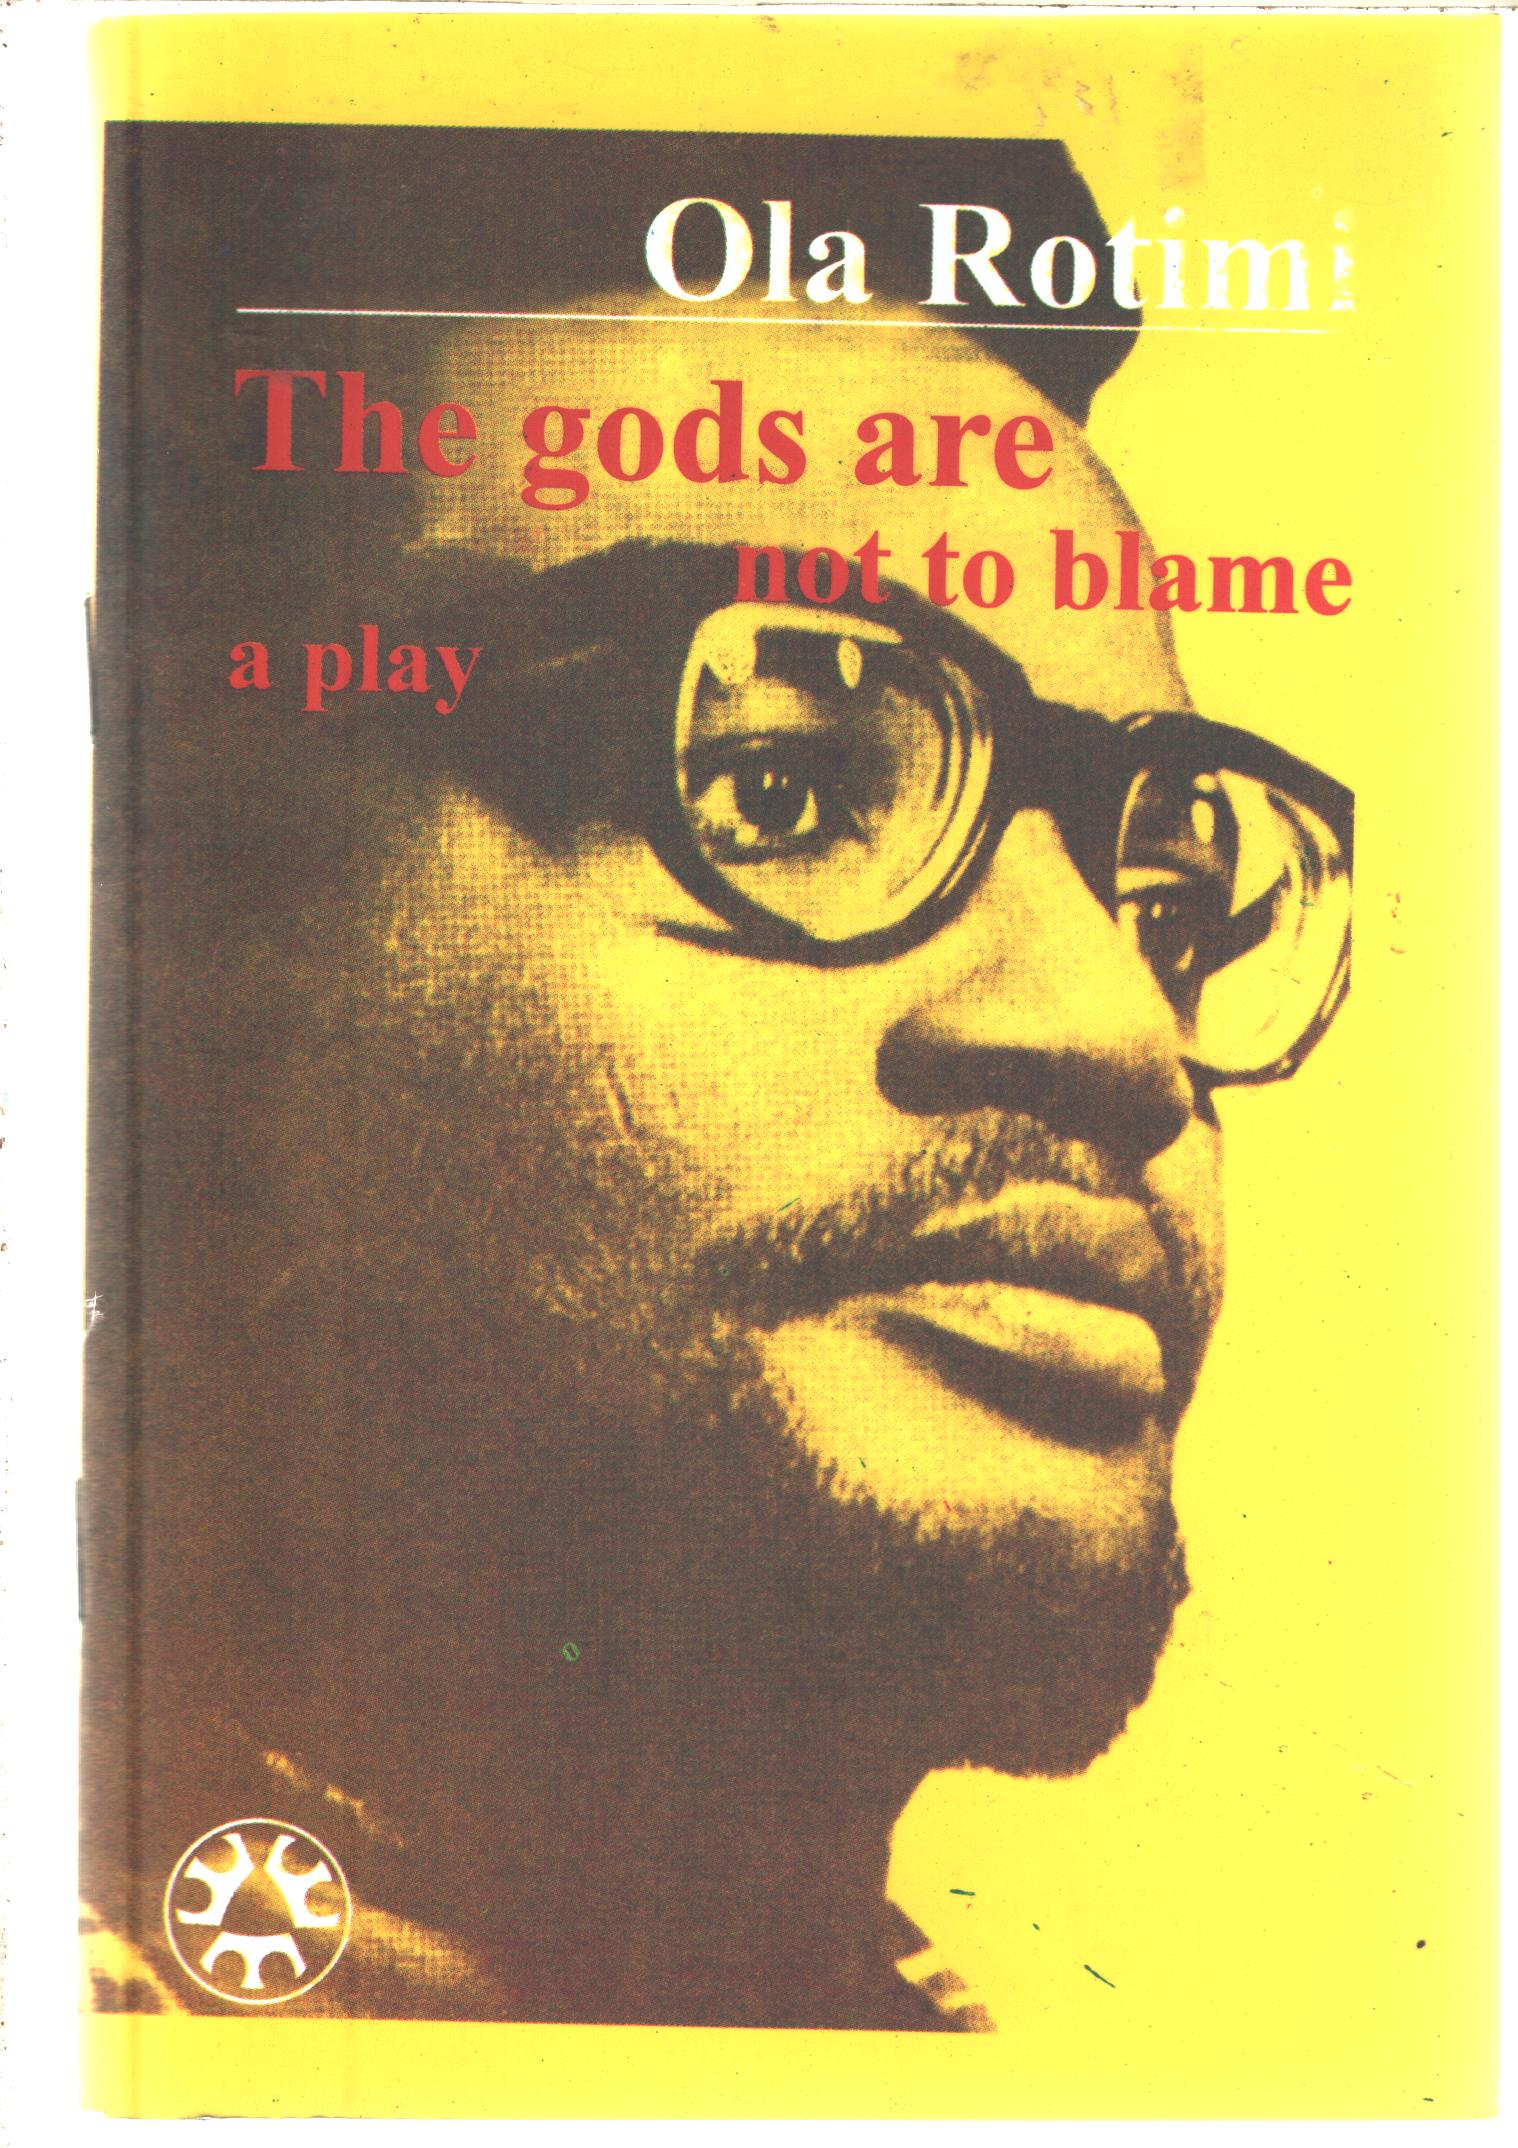 The gods are not to blame (By Ola Rotimi)